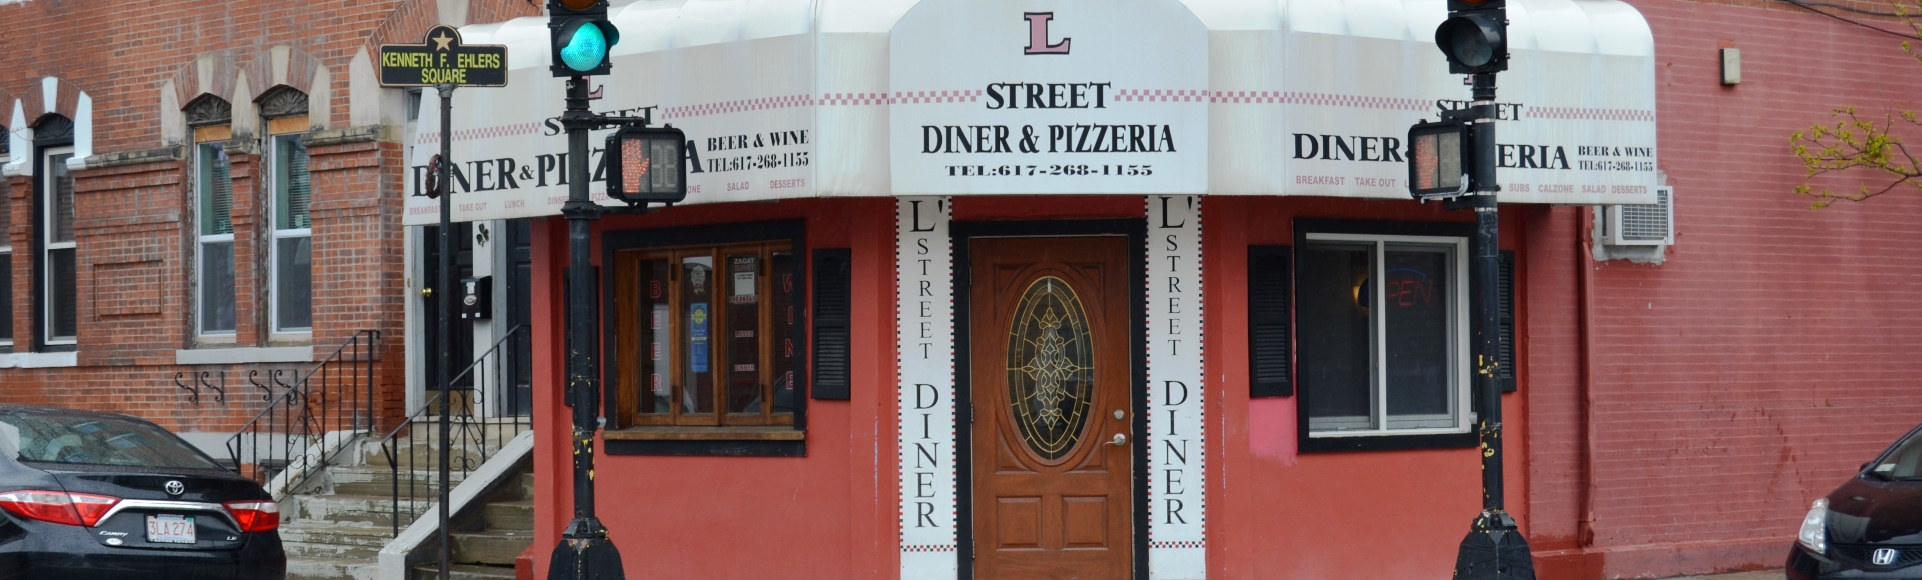 L Street Diner & Pizzeria South Boston